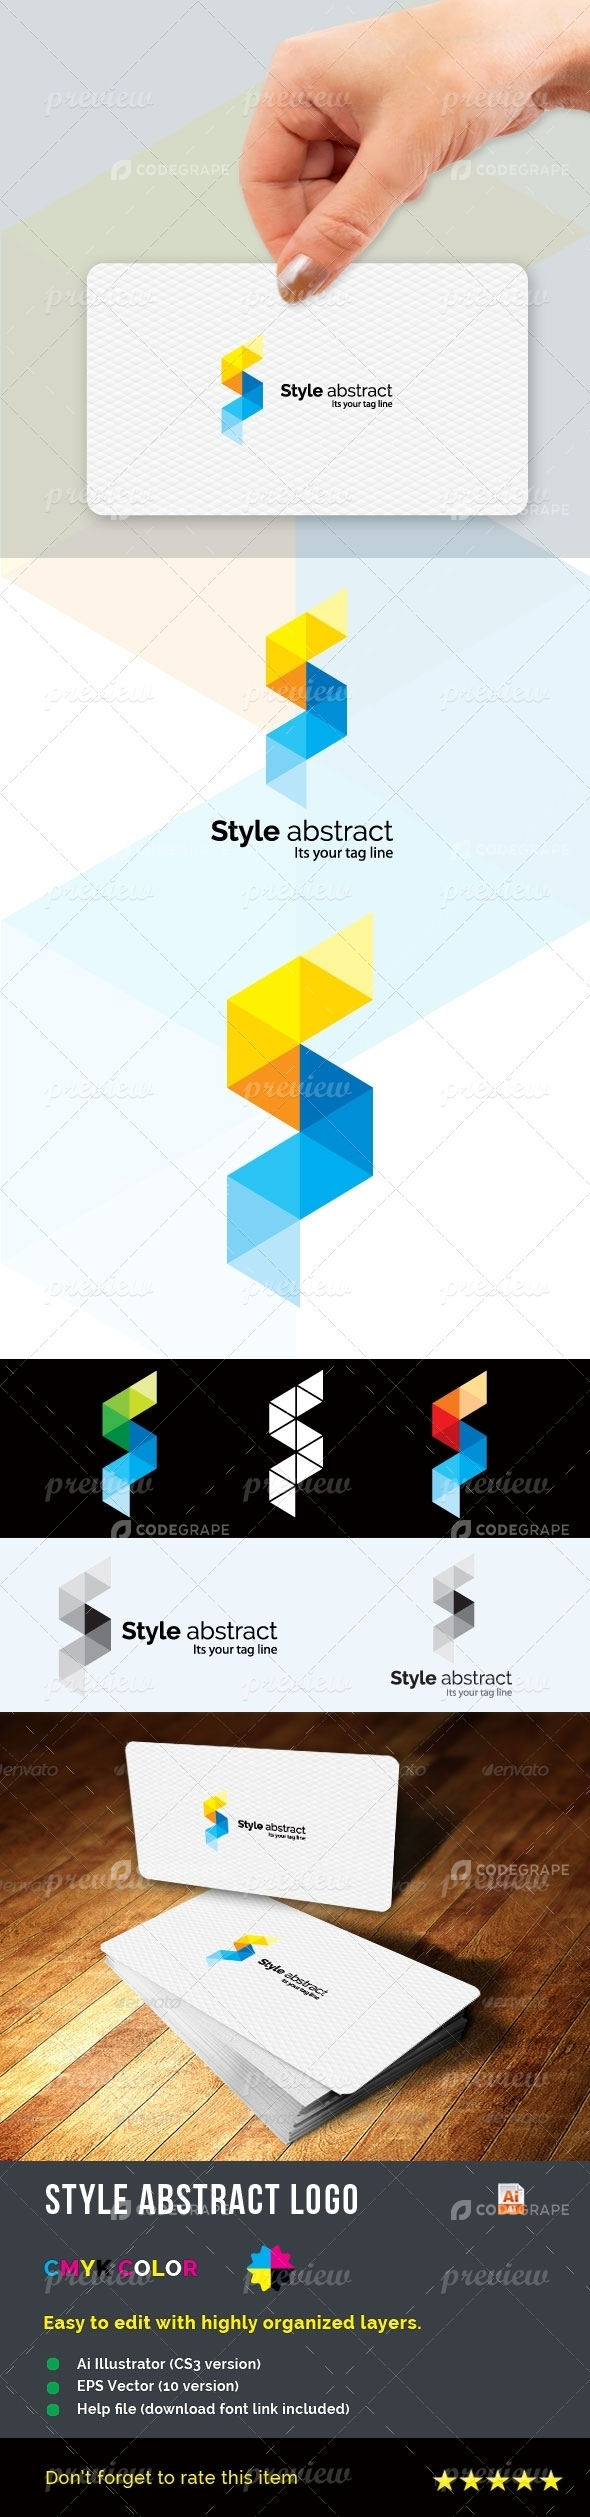 Style Abstract Logo